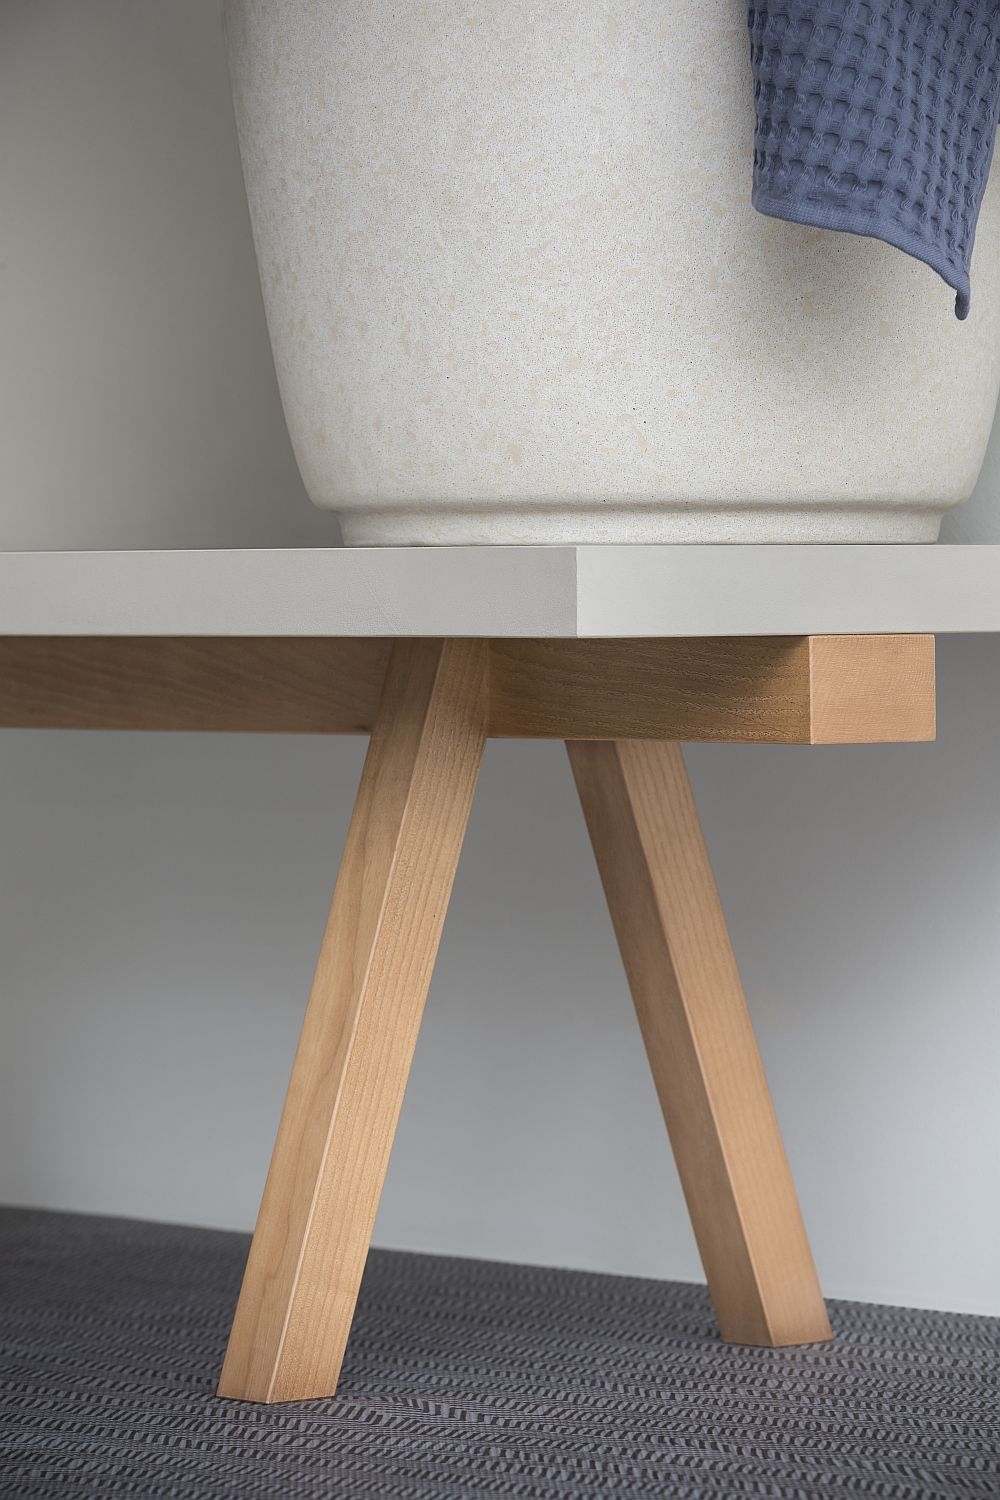 Stylish bathroom wooden bench from Rex Design